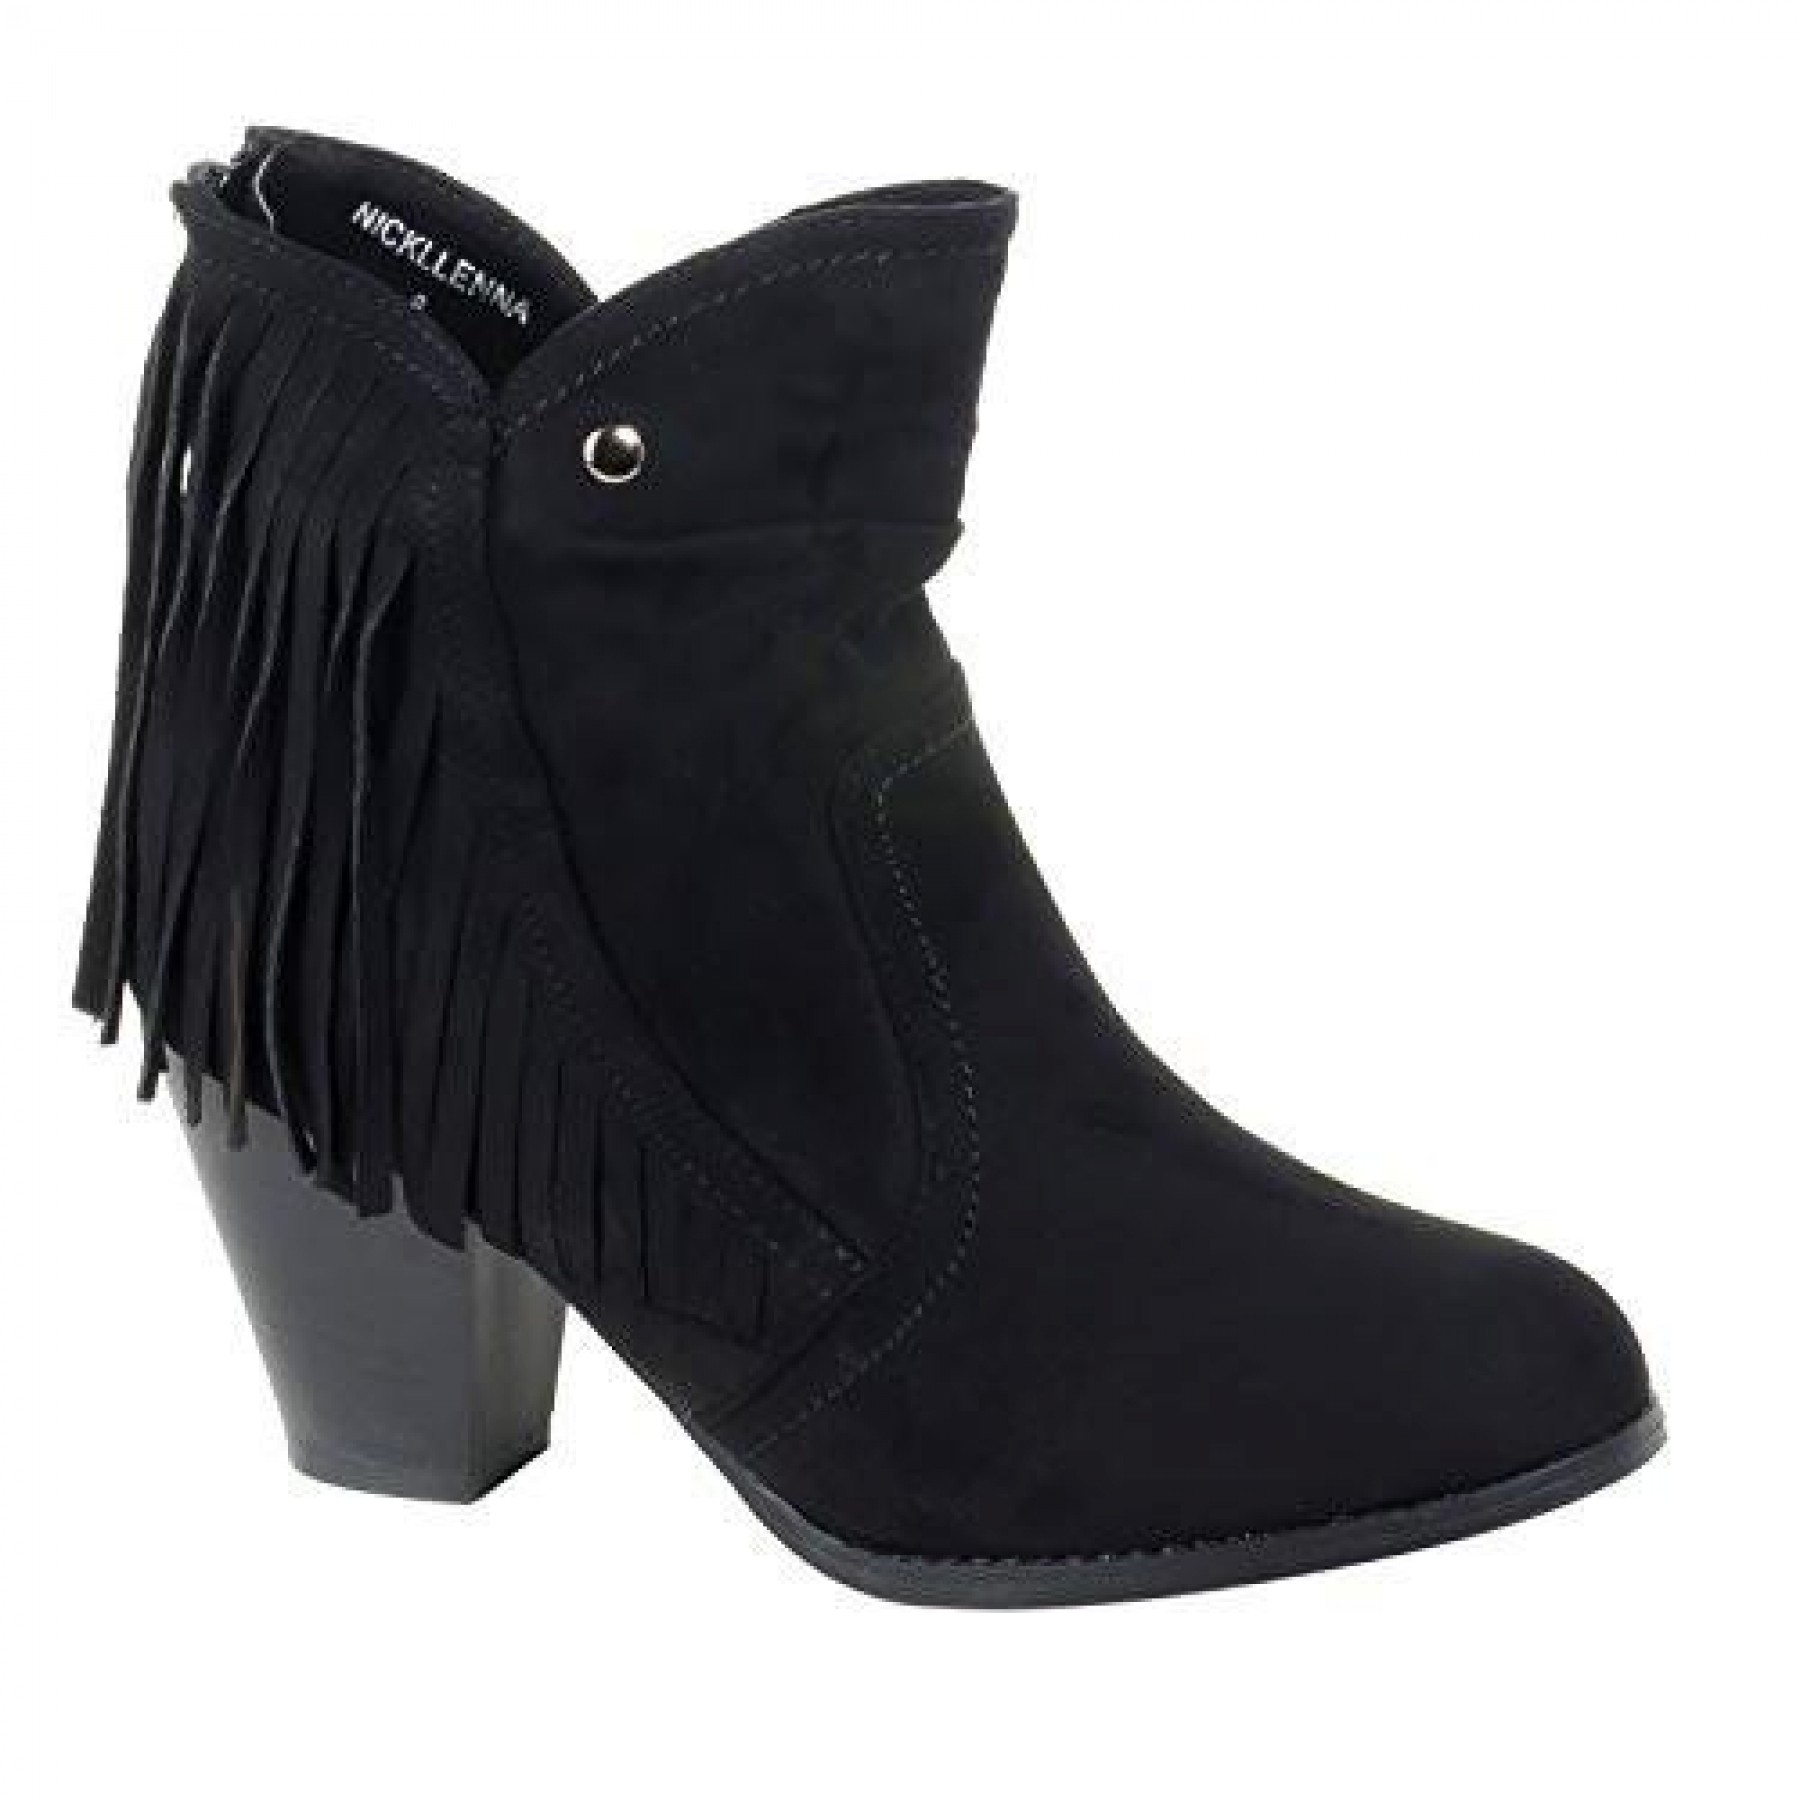 Women's Black Manmade Nickllenna 3-inch Heeled Boot with Western-Style Fringe